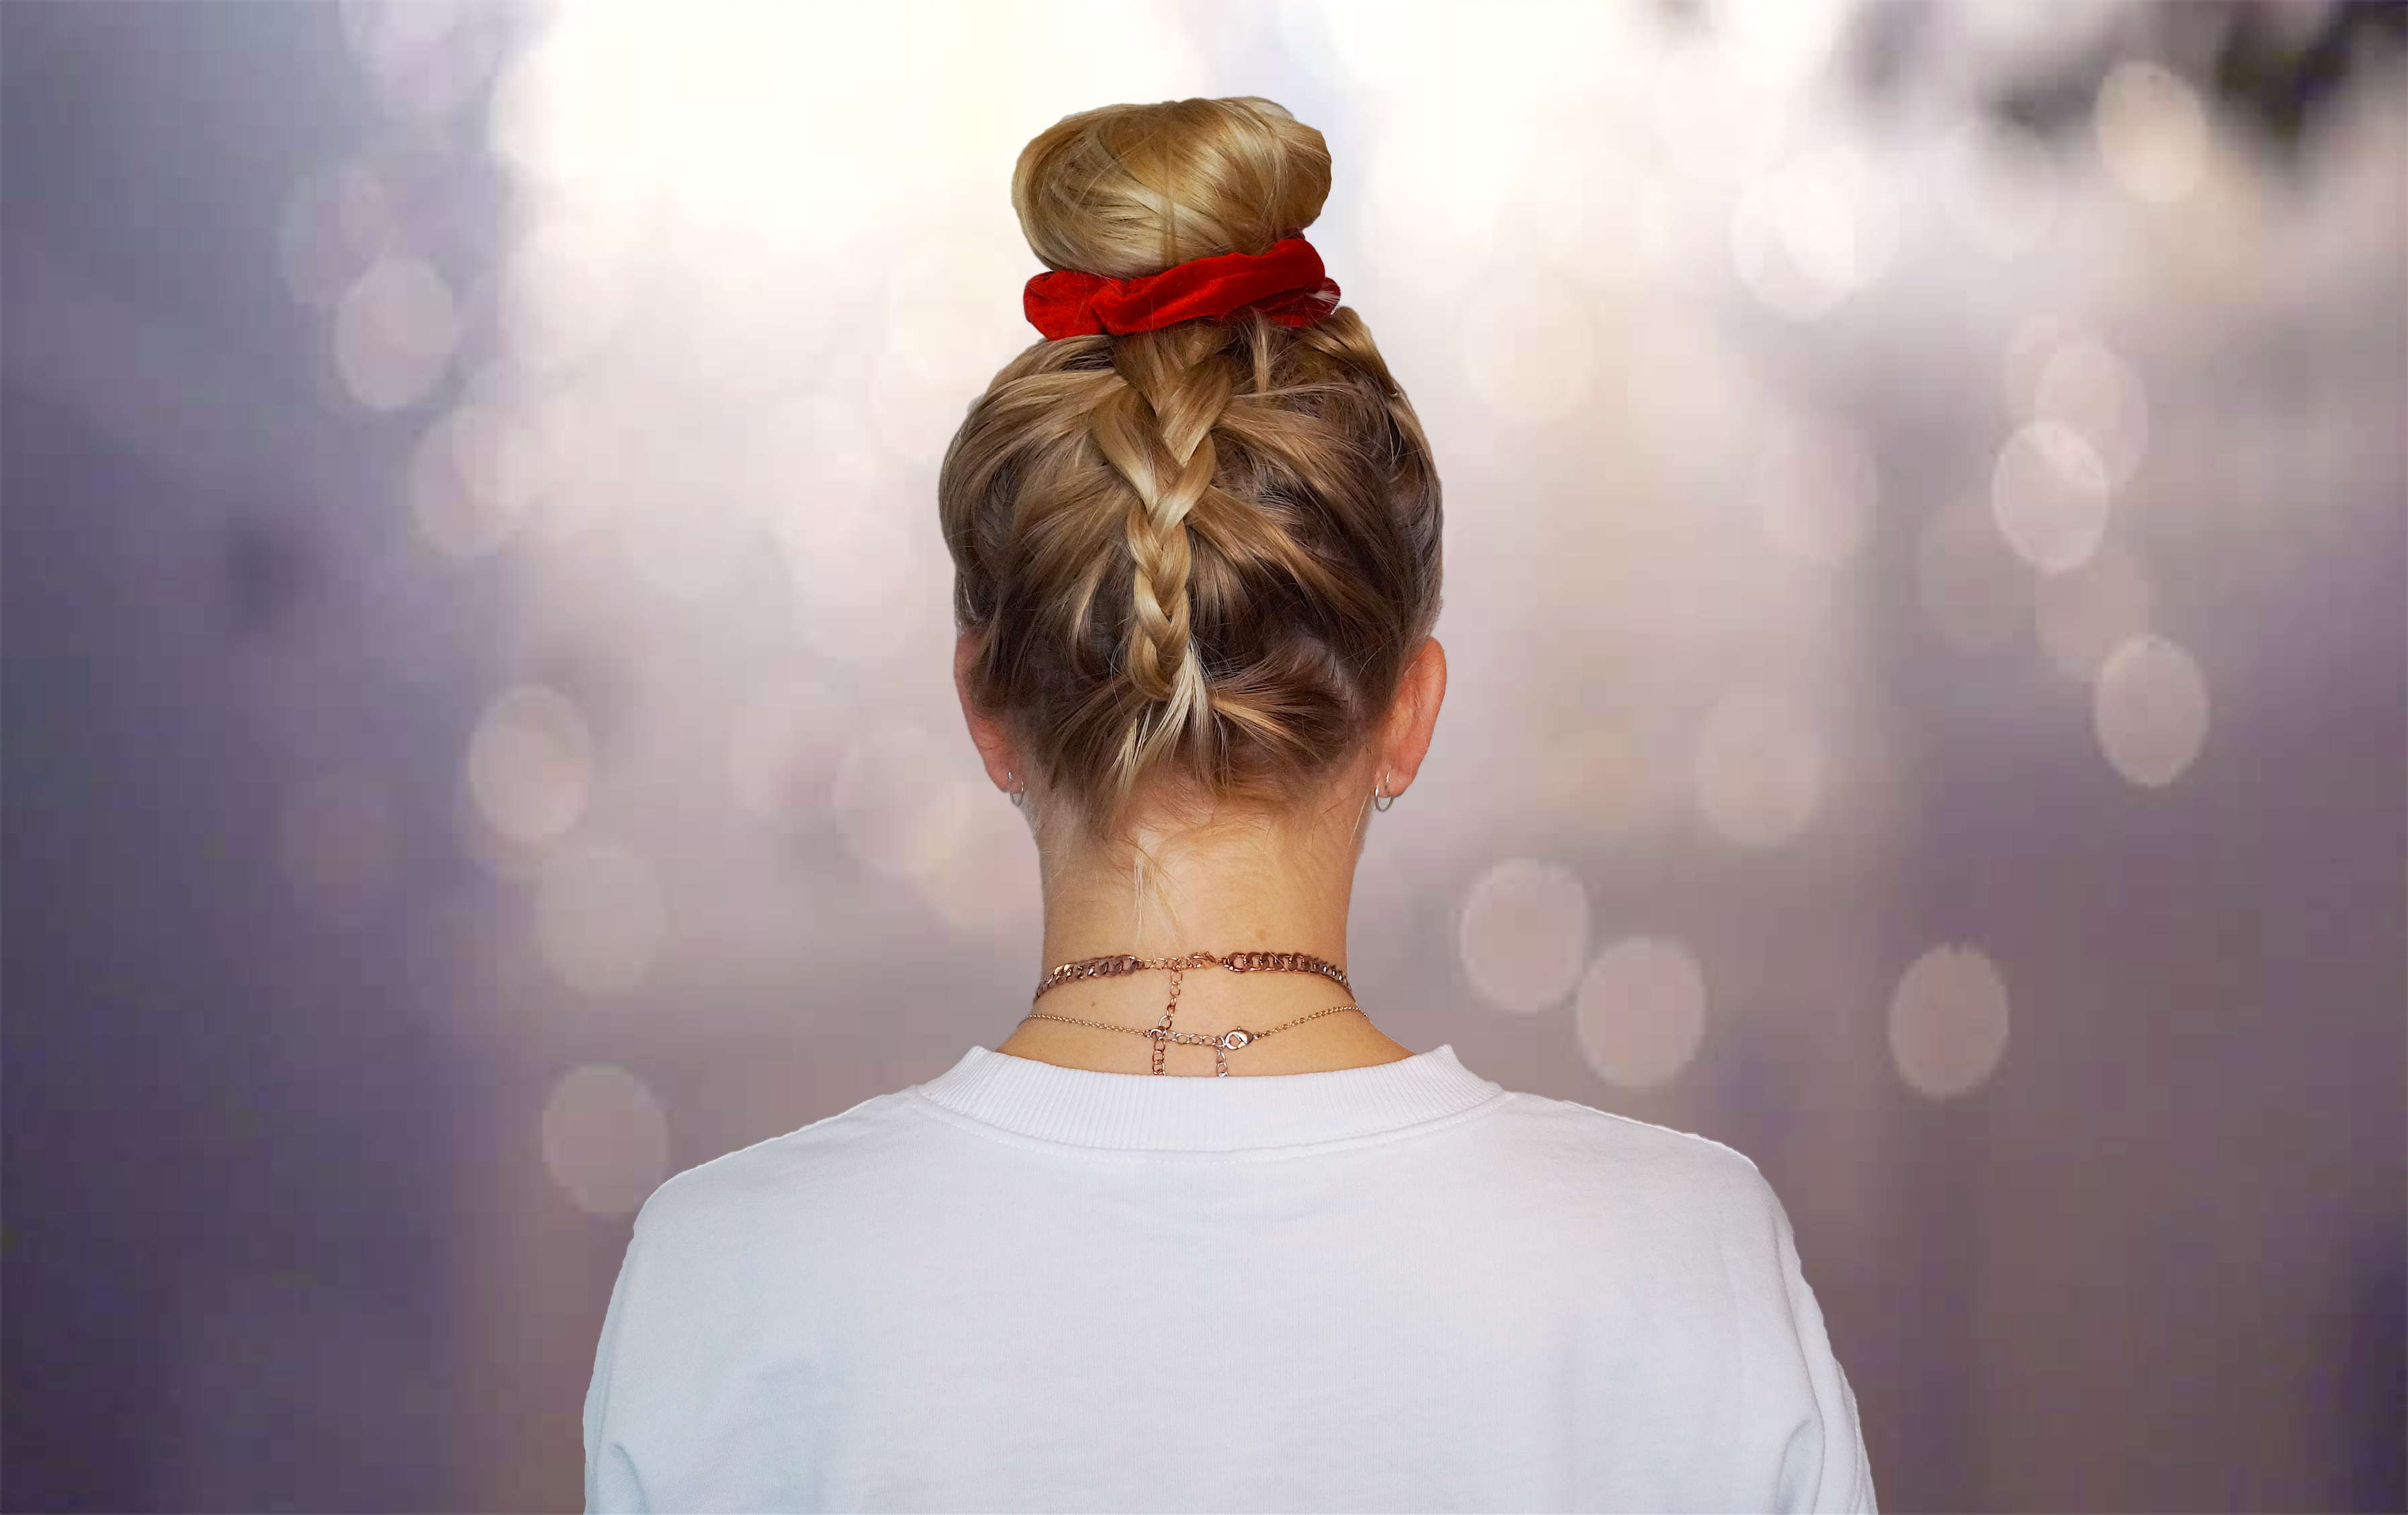 How to do a Upside Down Braid